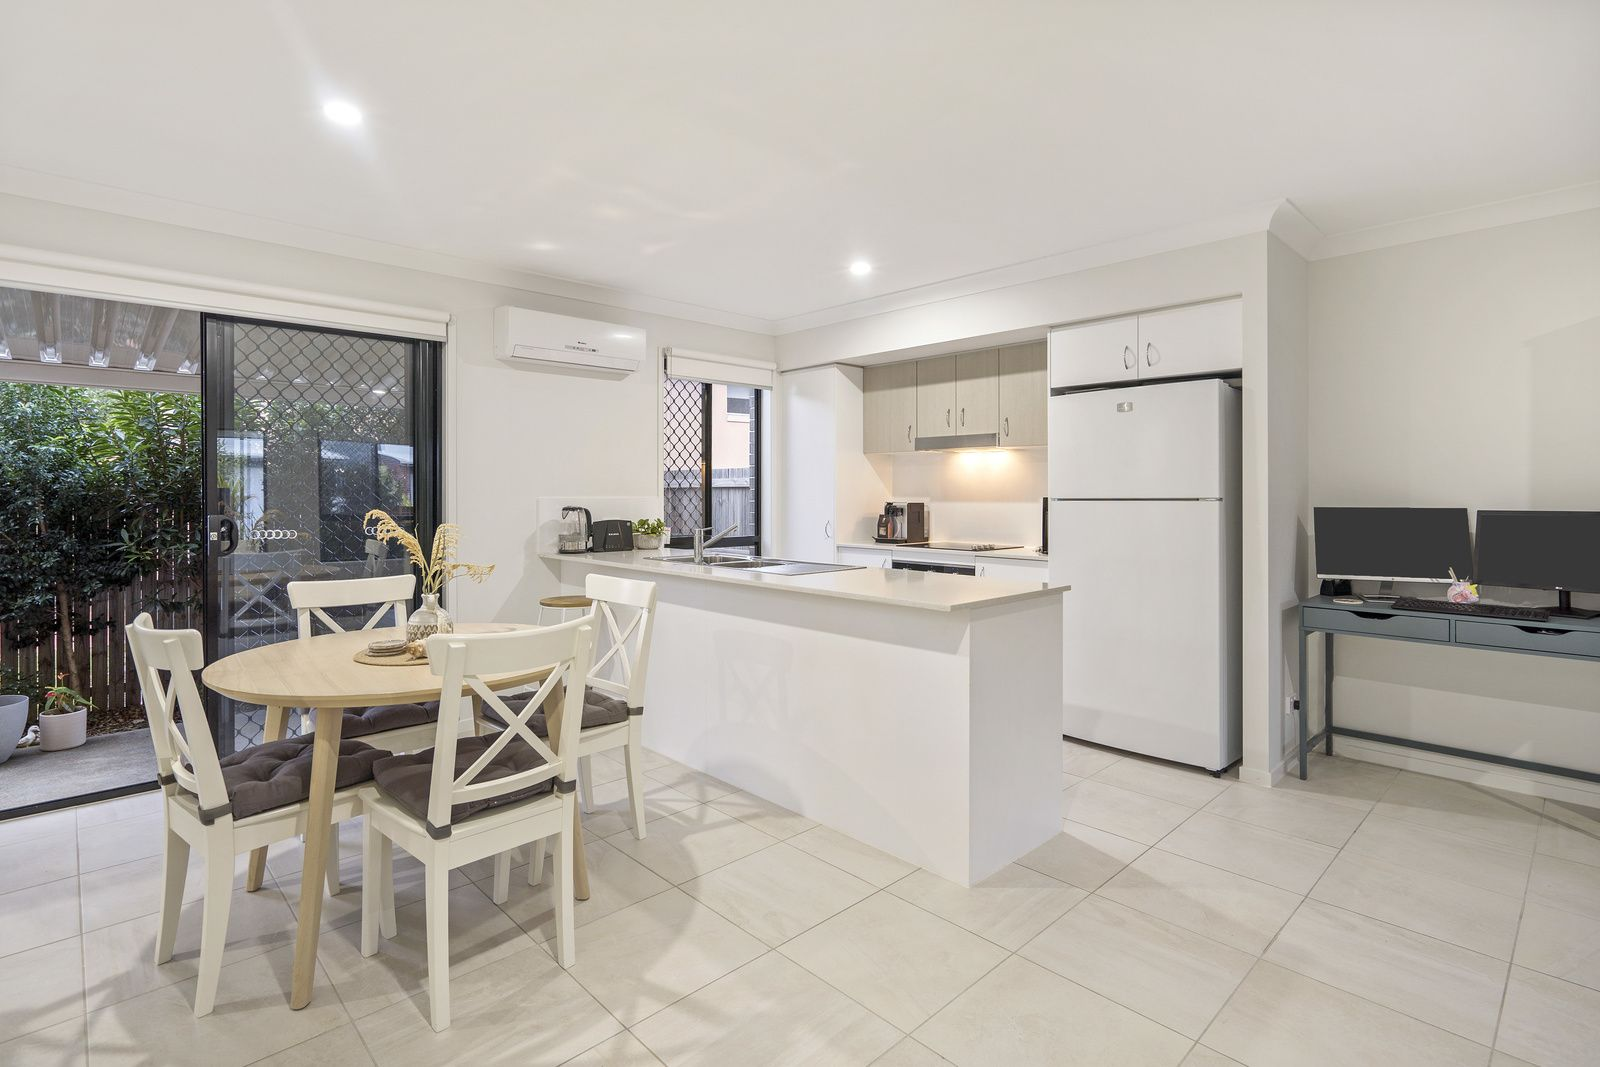 90/11 Rachow Street, Thornlands QLD 4164, Image 1